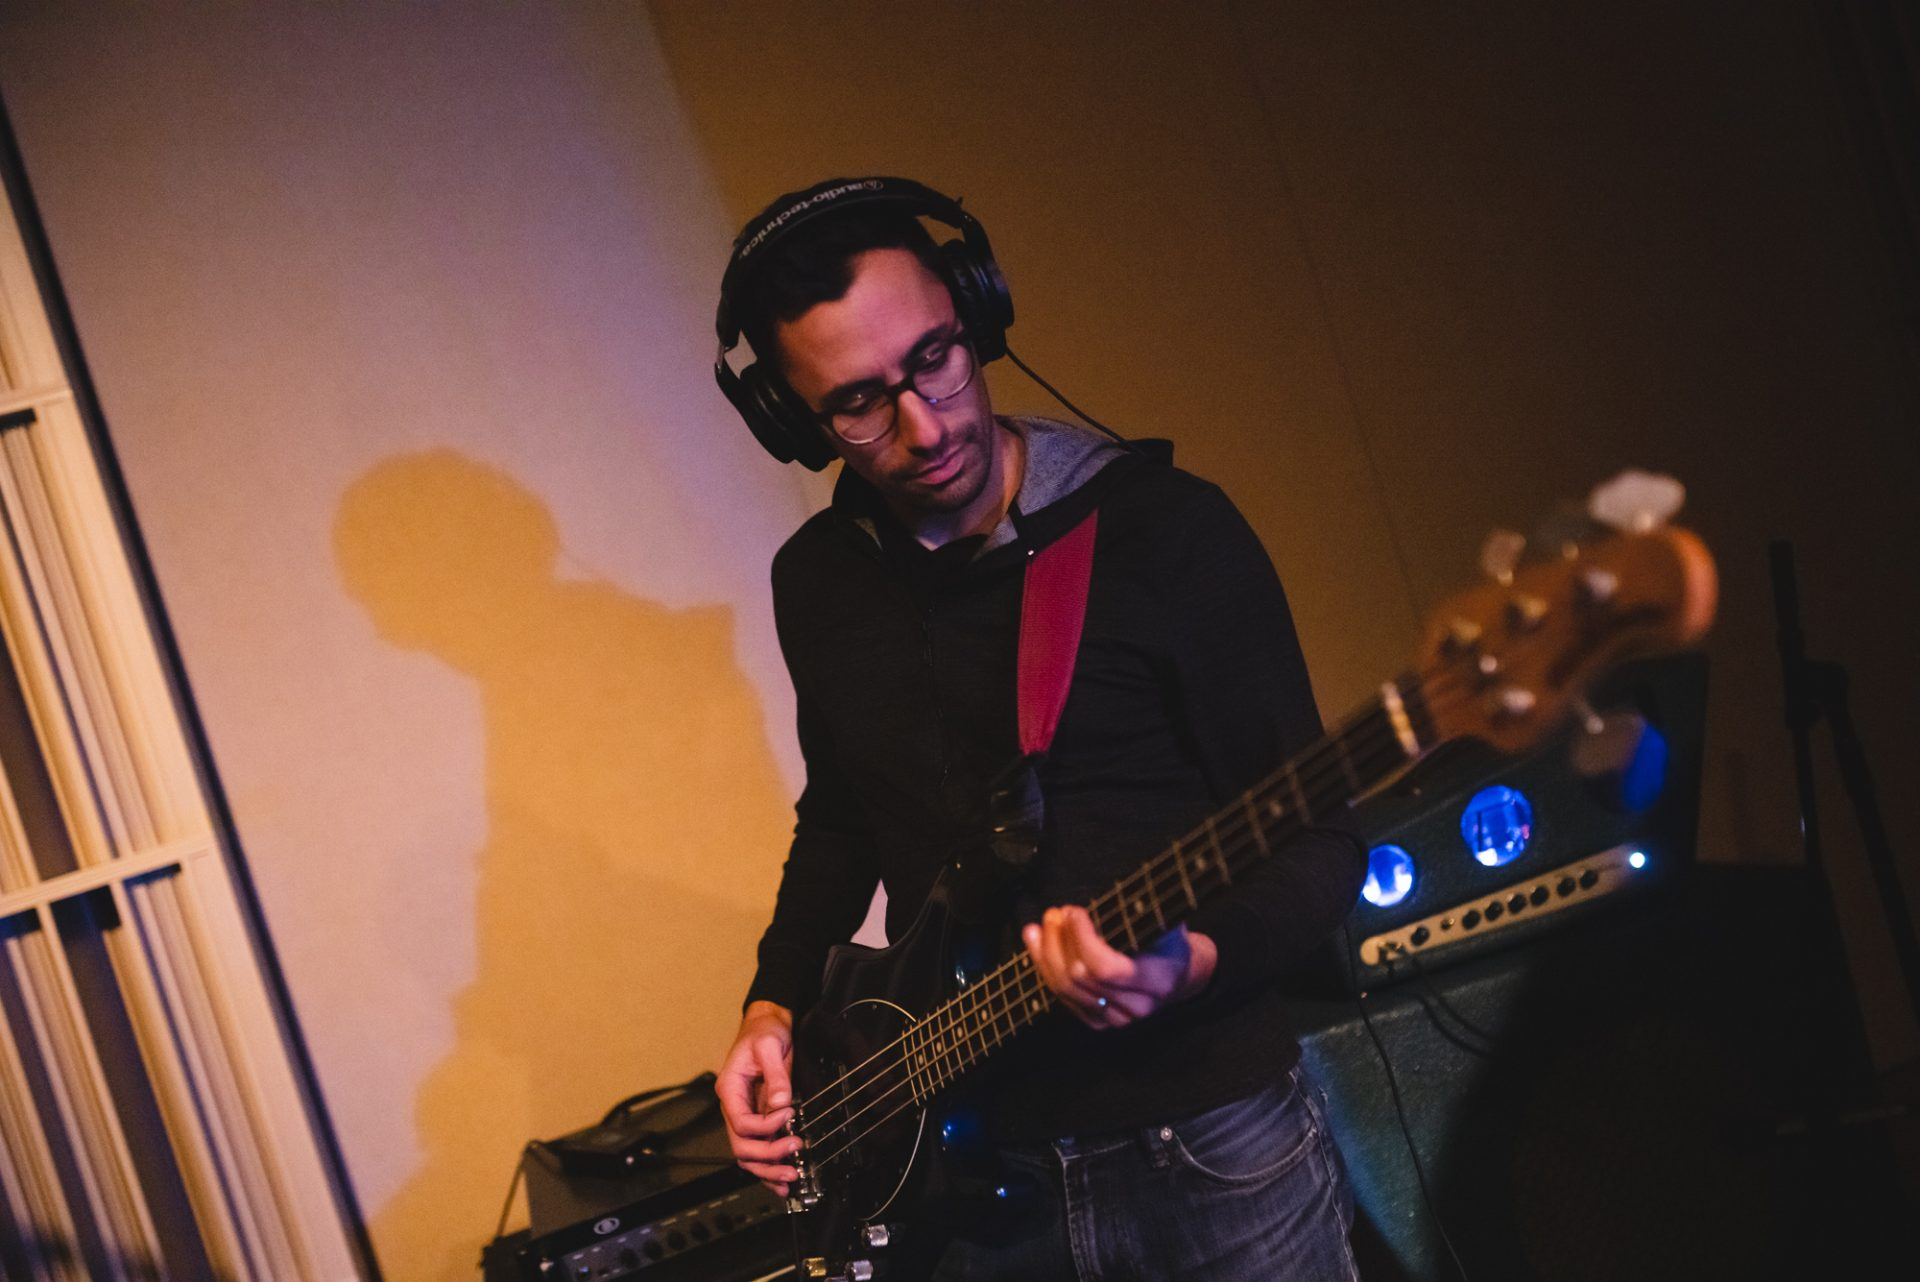 Joe Terranova playing bass